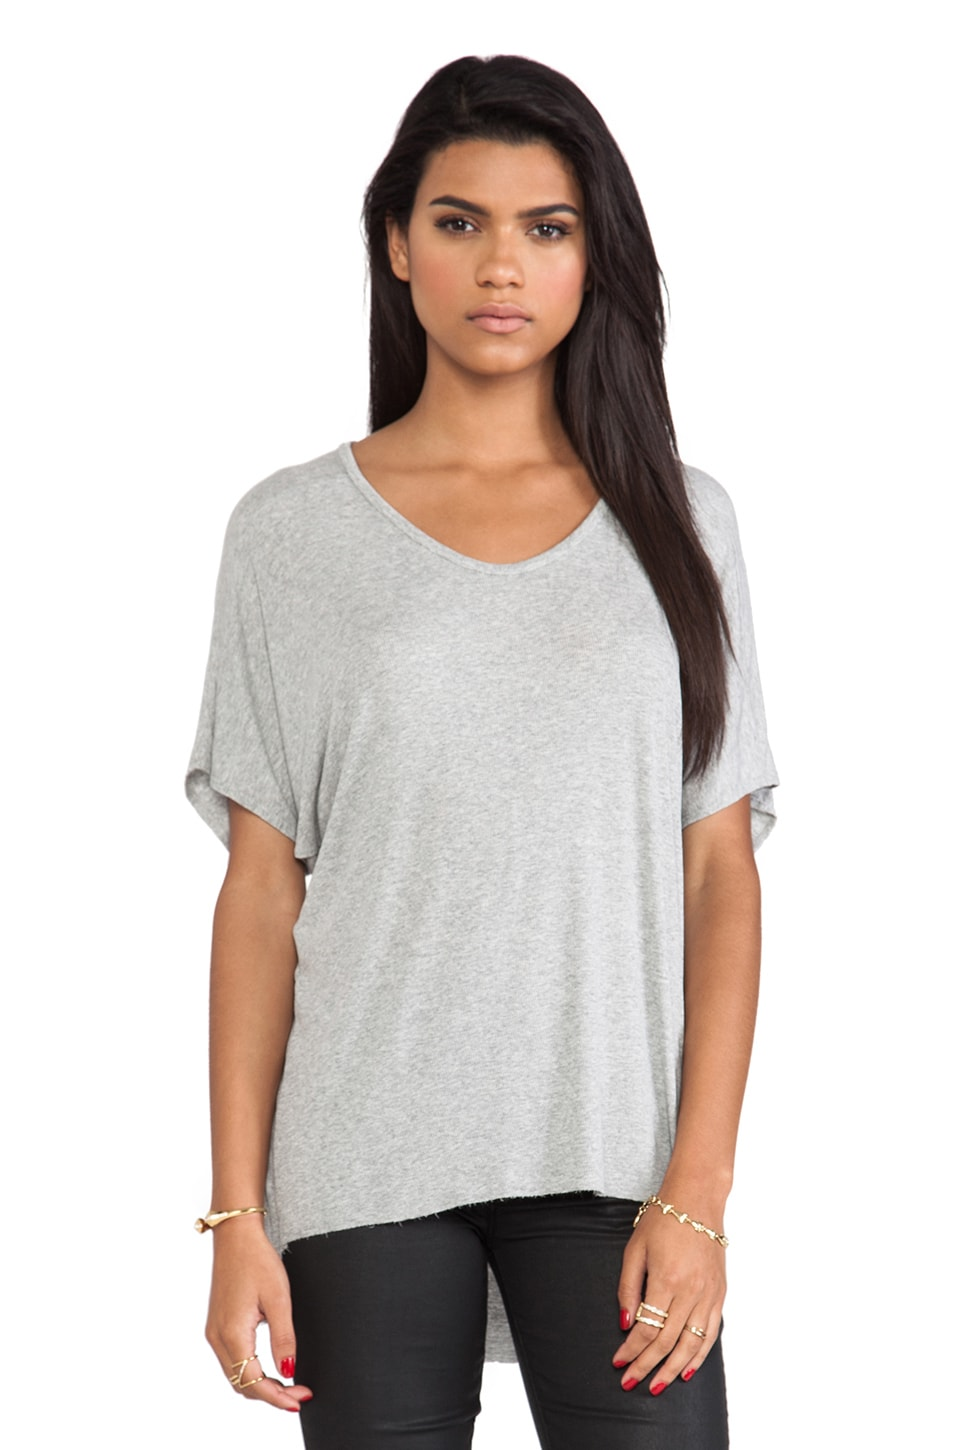 dolan Short Sleeve High Low Tee in Silver